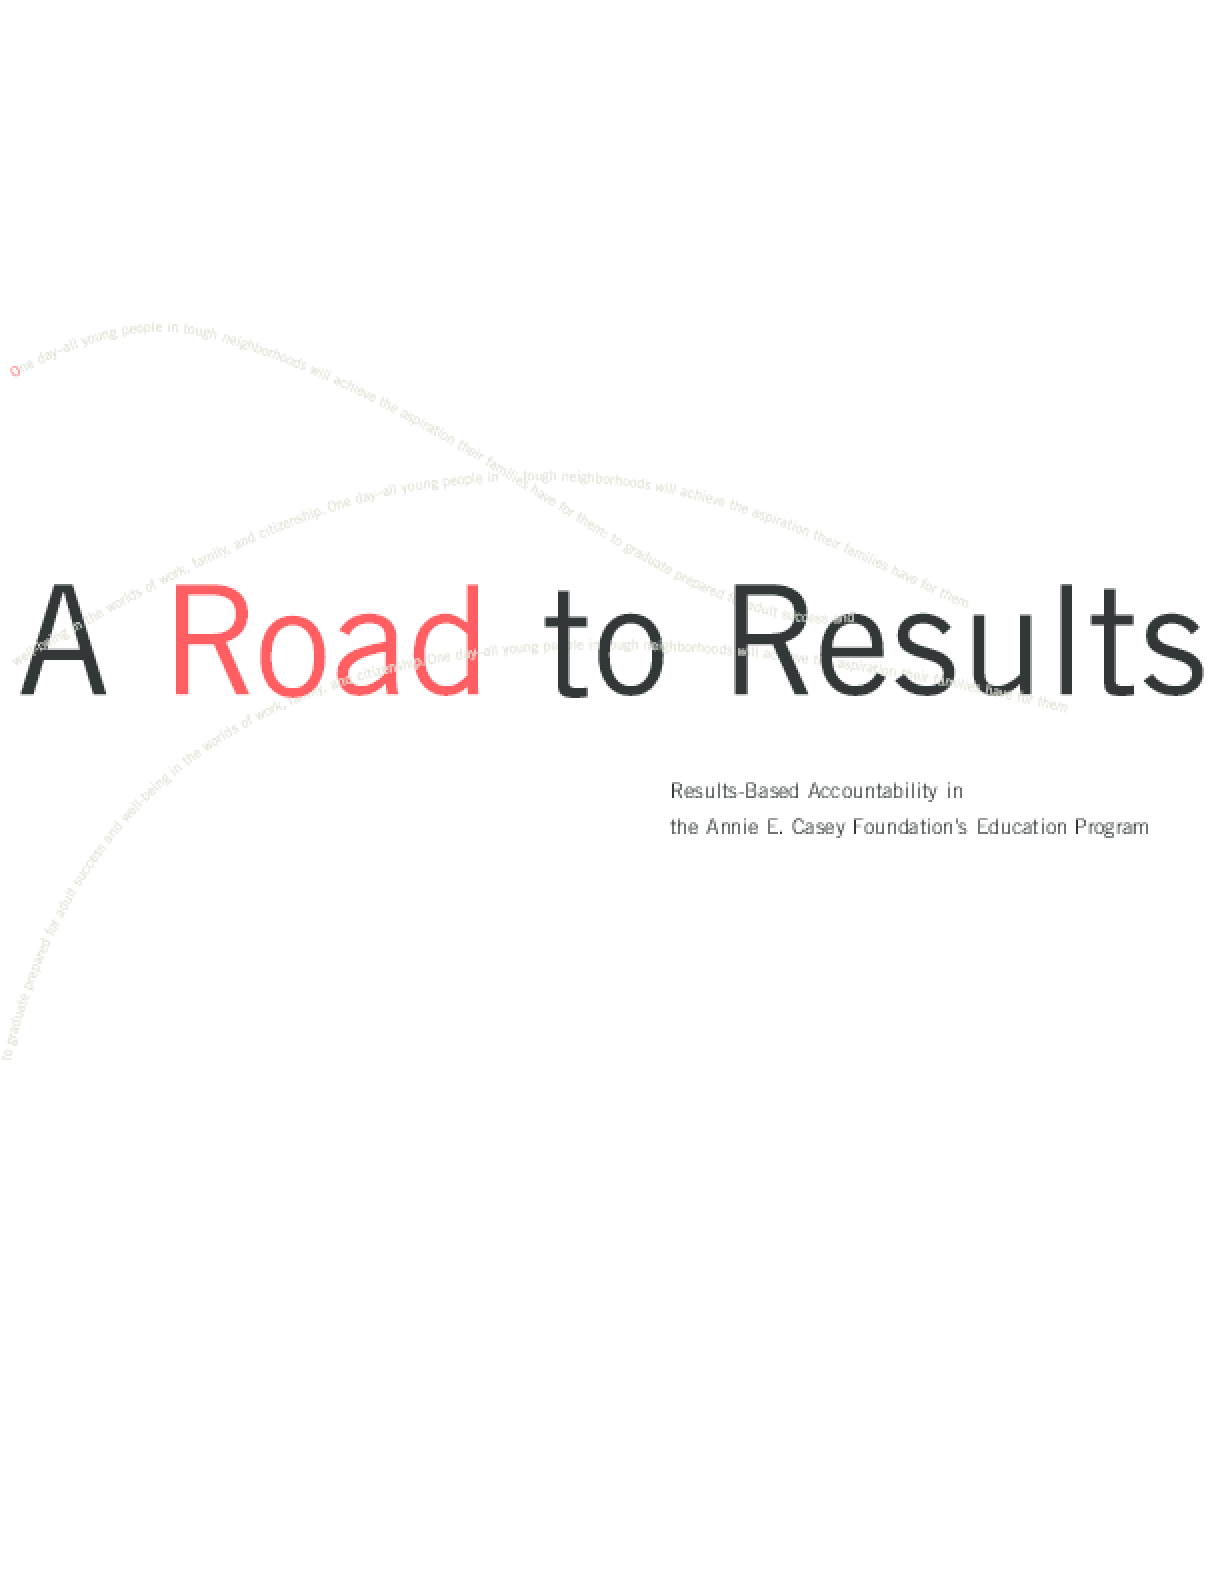 A Road to Results: Results-Based Accountability in the Annie E. Casey Foundation's Education Program